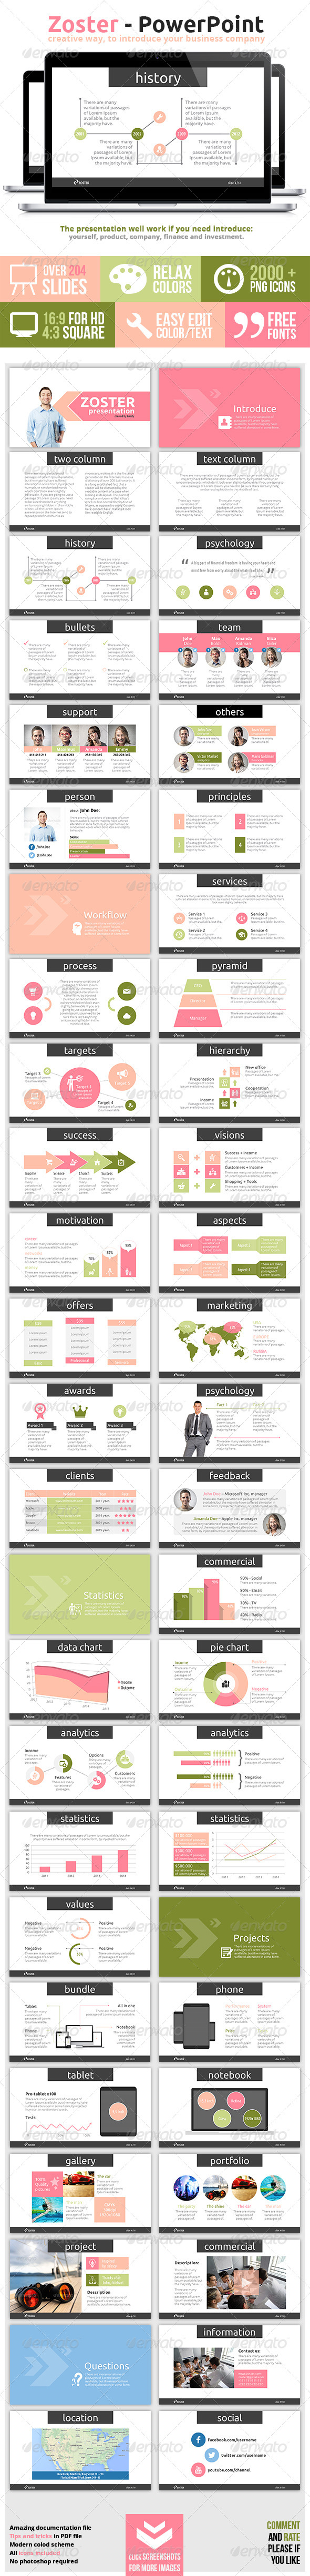 GraphicRiver Zoster Powerpoint Presentation 7363622